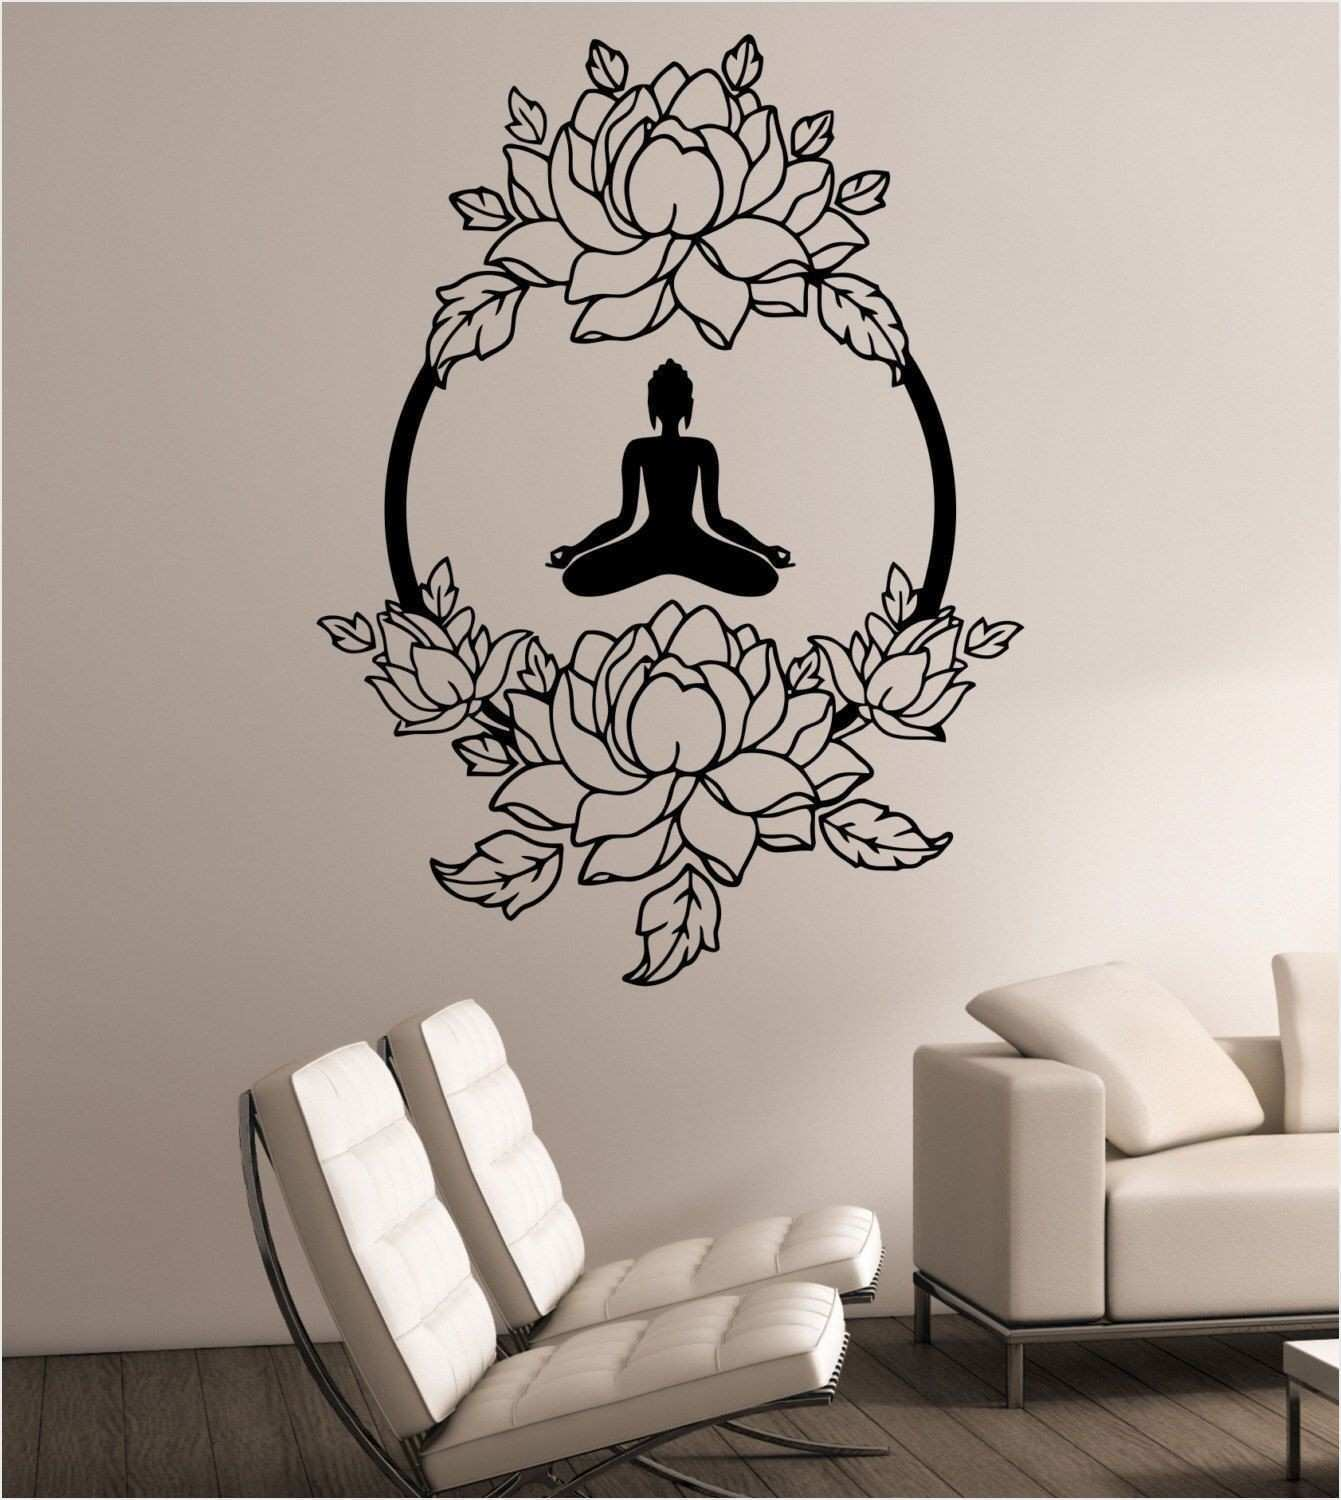 Awesome Fake Wood Wall Decal